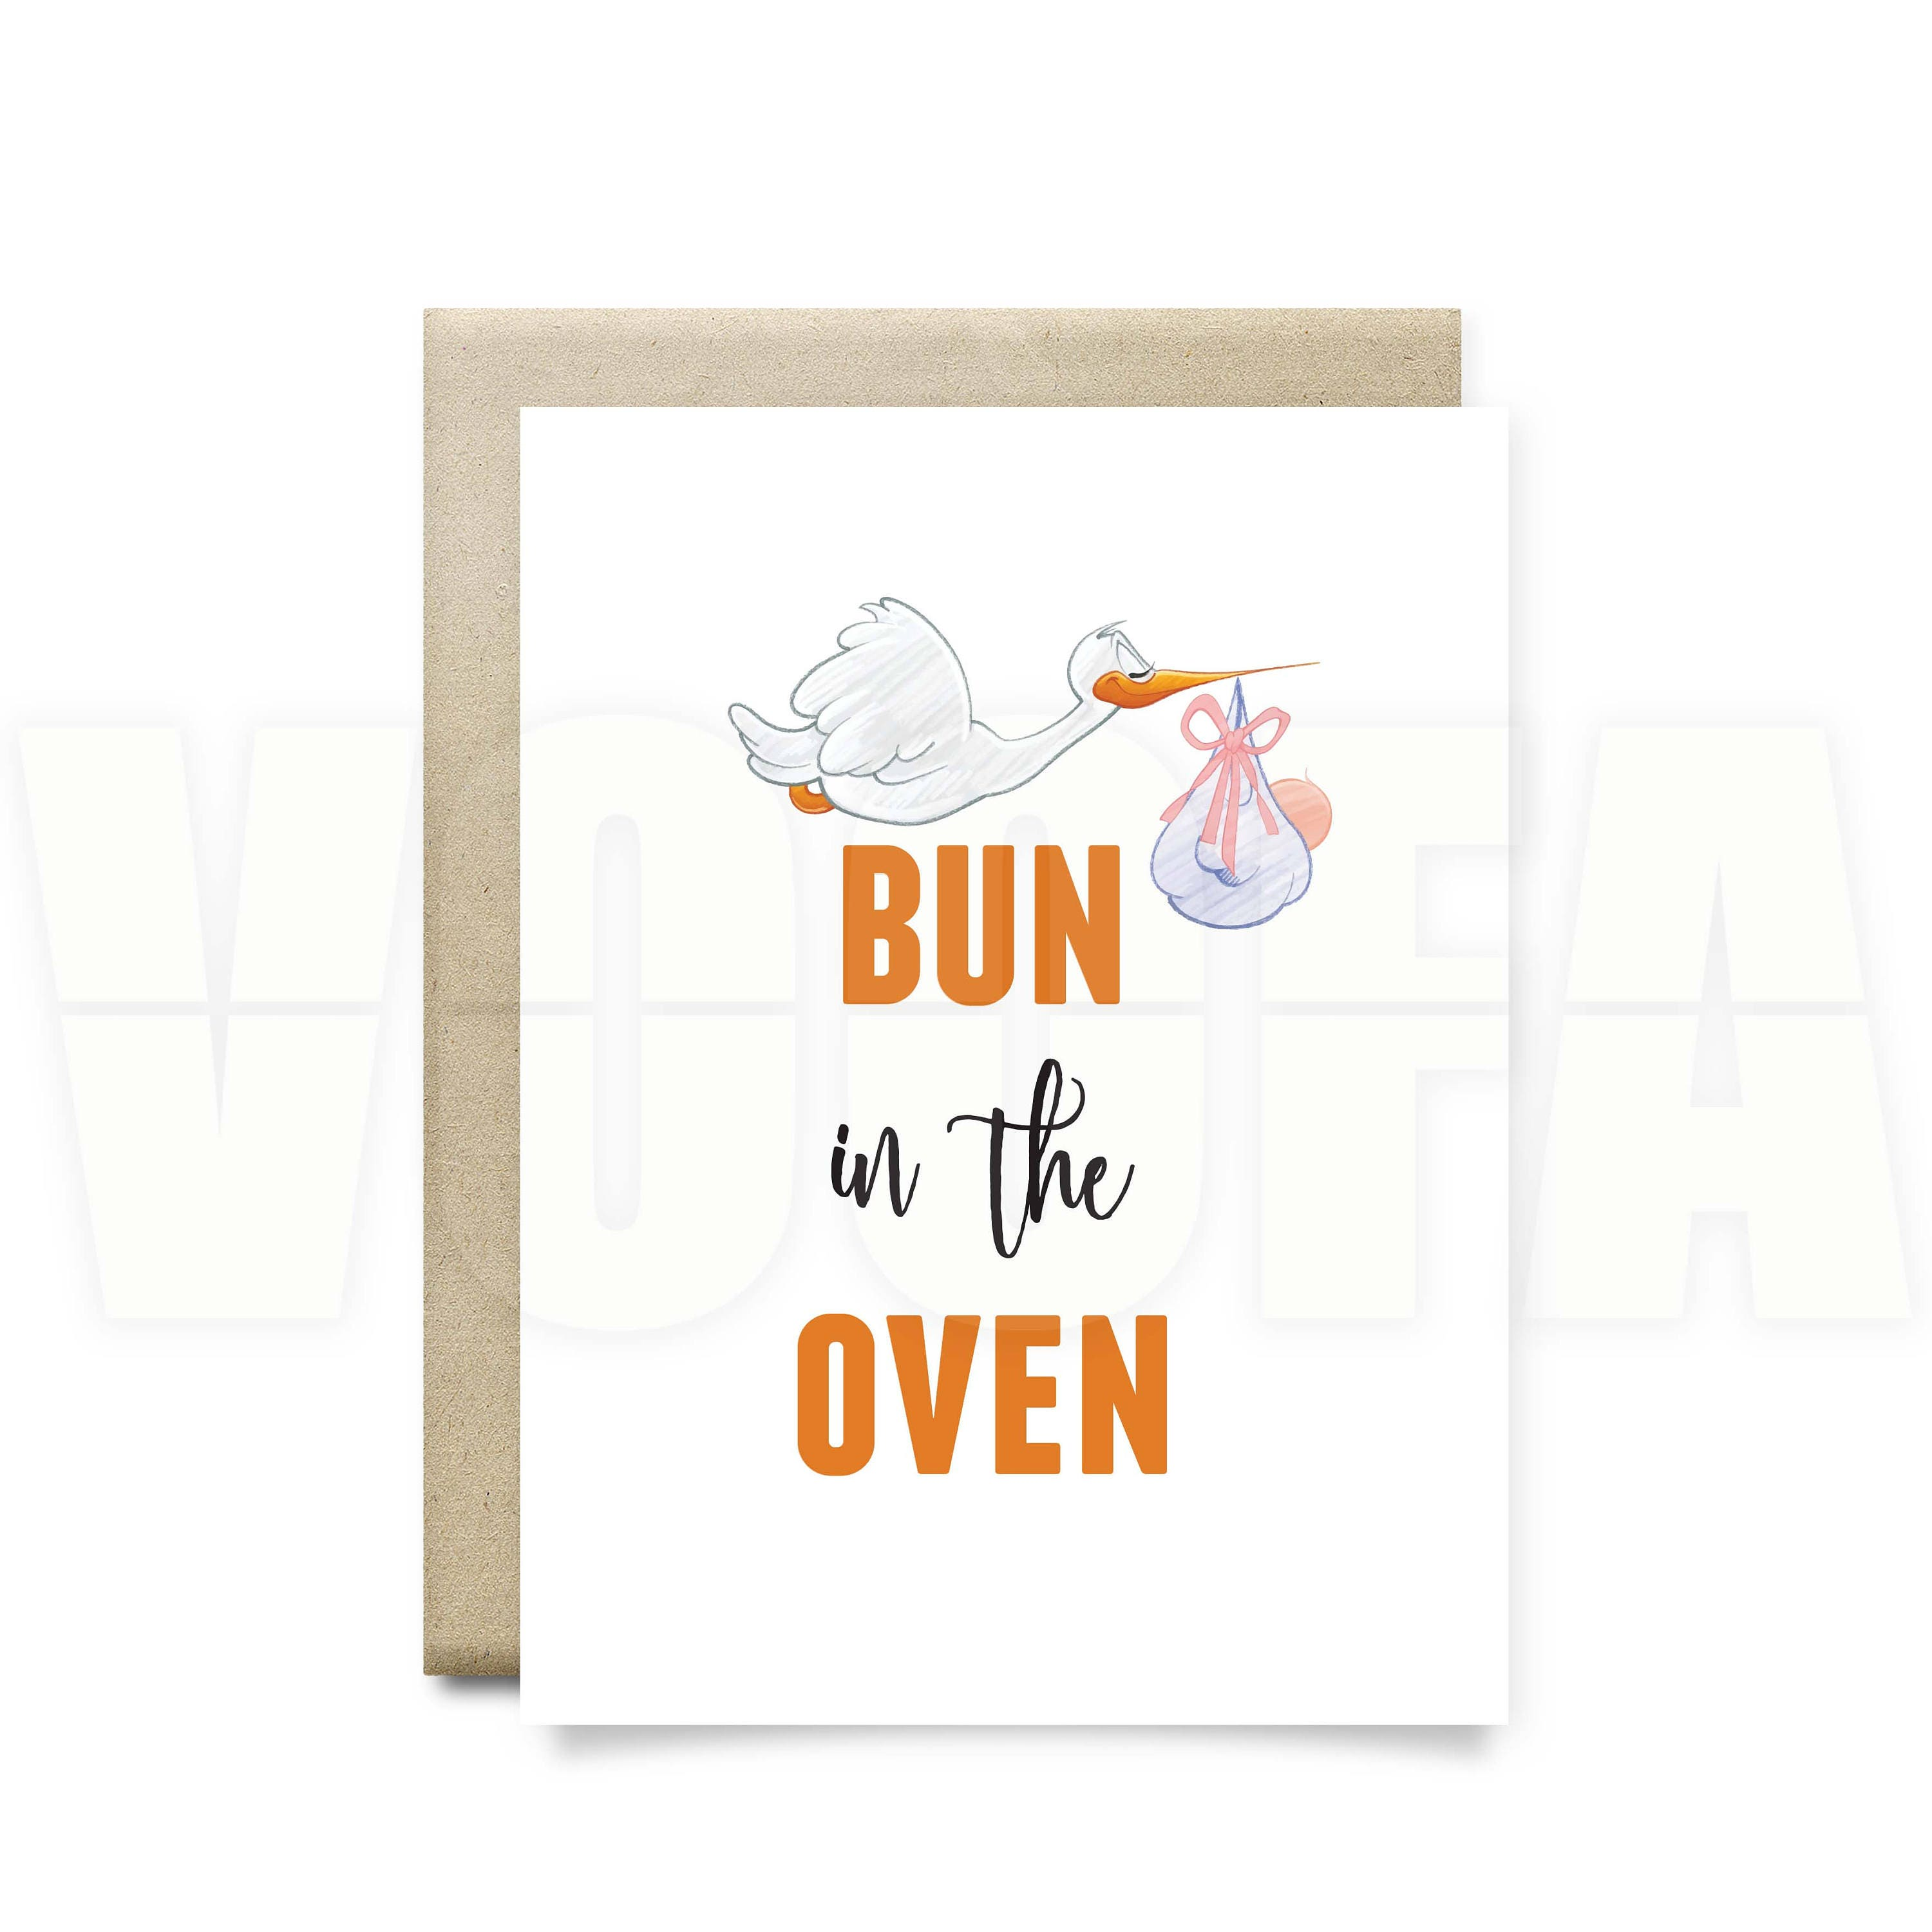 aunt pregnancy announcement grandparents to be bun the – Bun in the Oven Baby Announcement